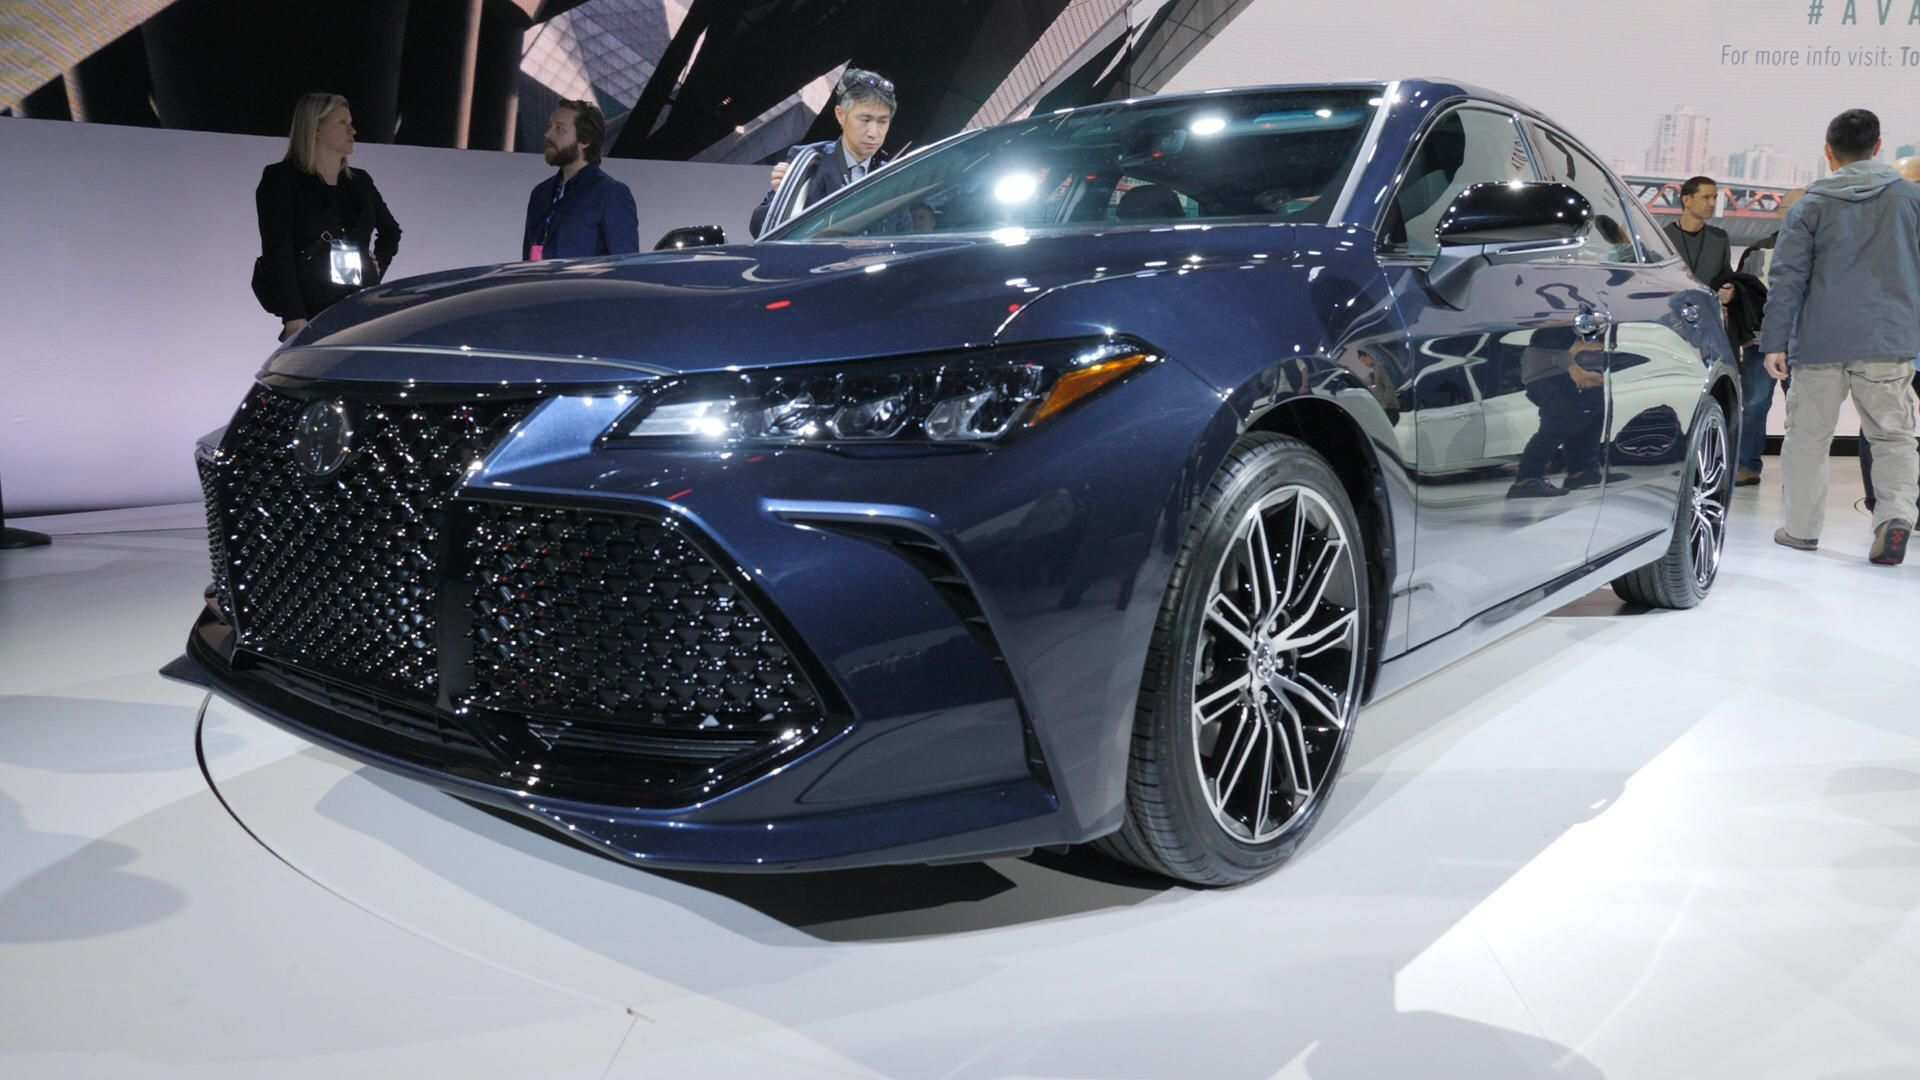 85 All New Avalon Toyota 2020 New Concept Wallpaper for Avalon Toyota 2020 New Concept